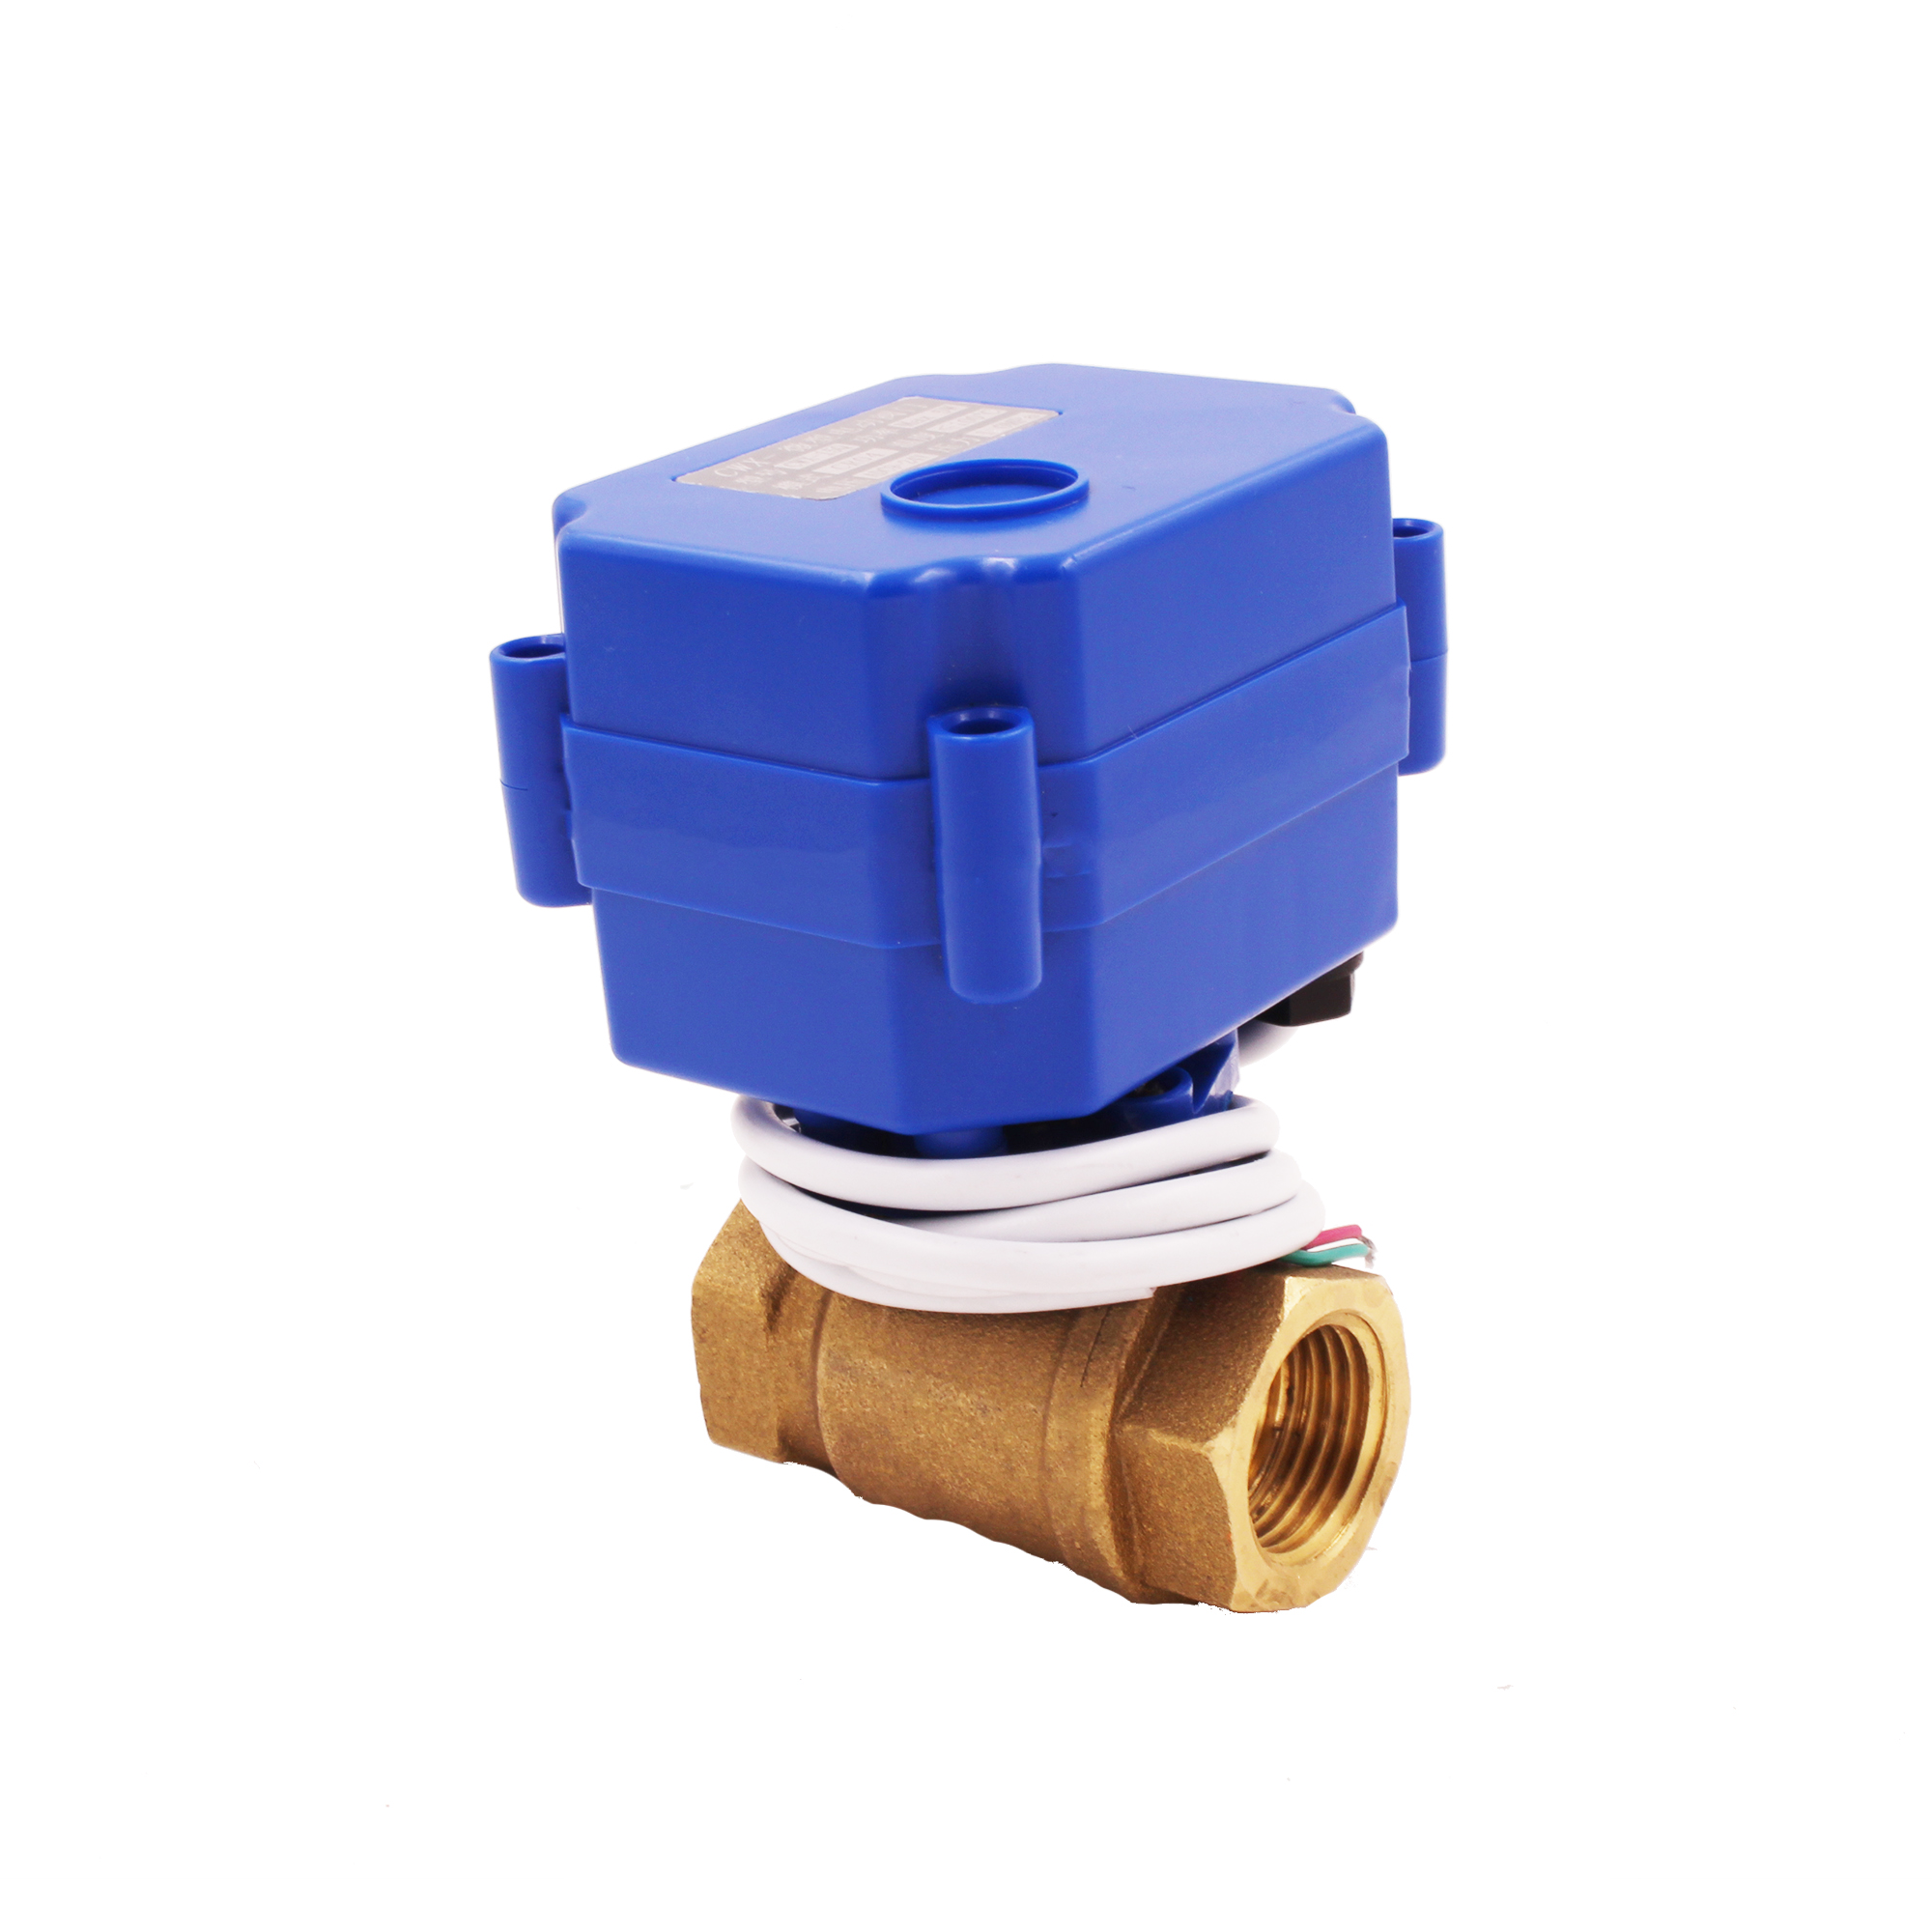 CWX-15 Q/N motor actuator Torqur 2NM Full port 2 way mini electric ball valve for water treatment. smart watermeter,water filter